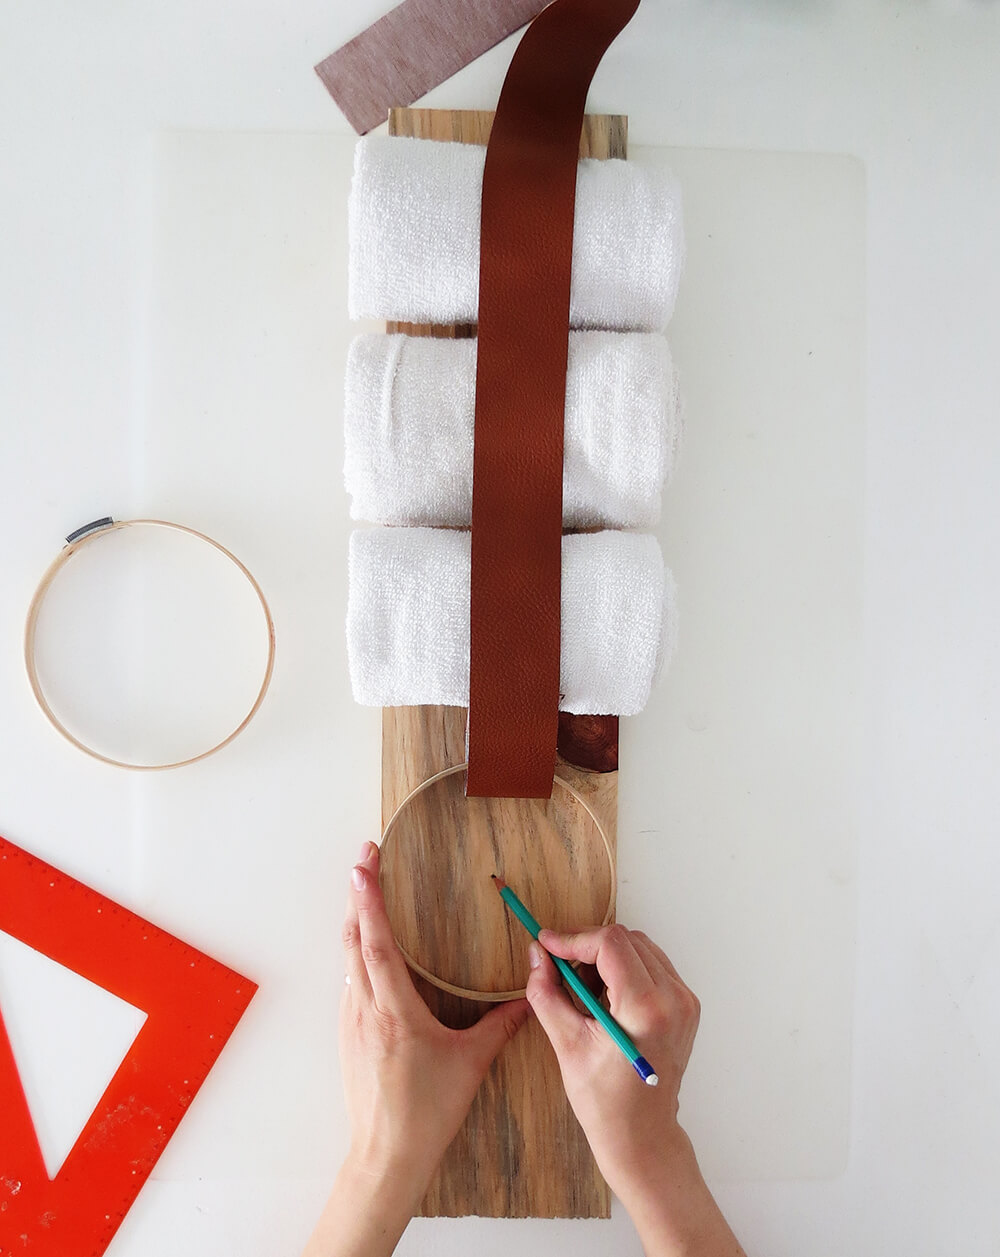 DIY Towel Storage Idea for A Small Bathroom!